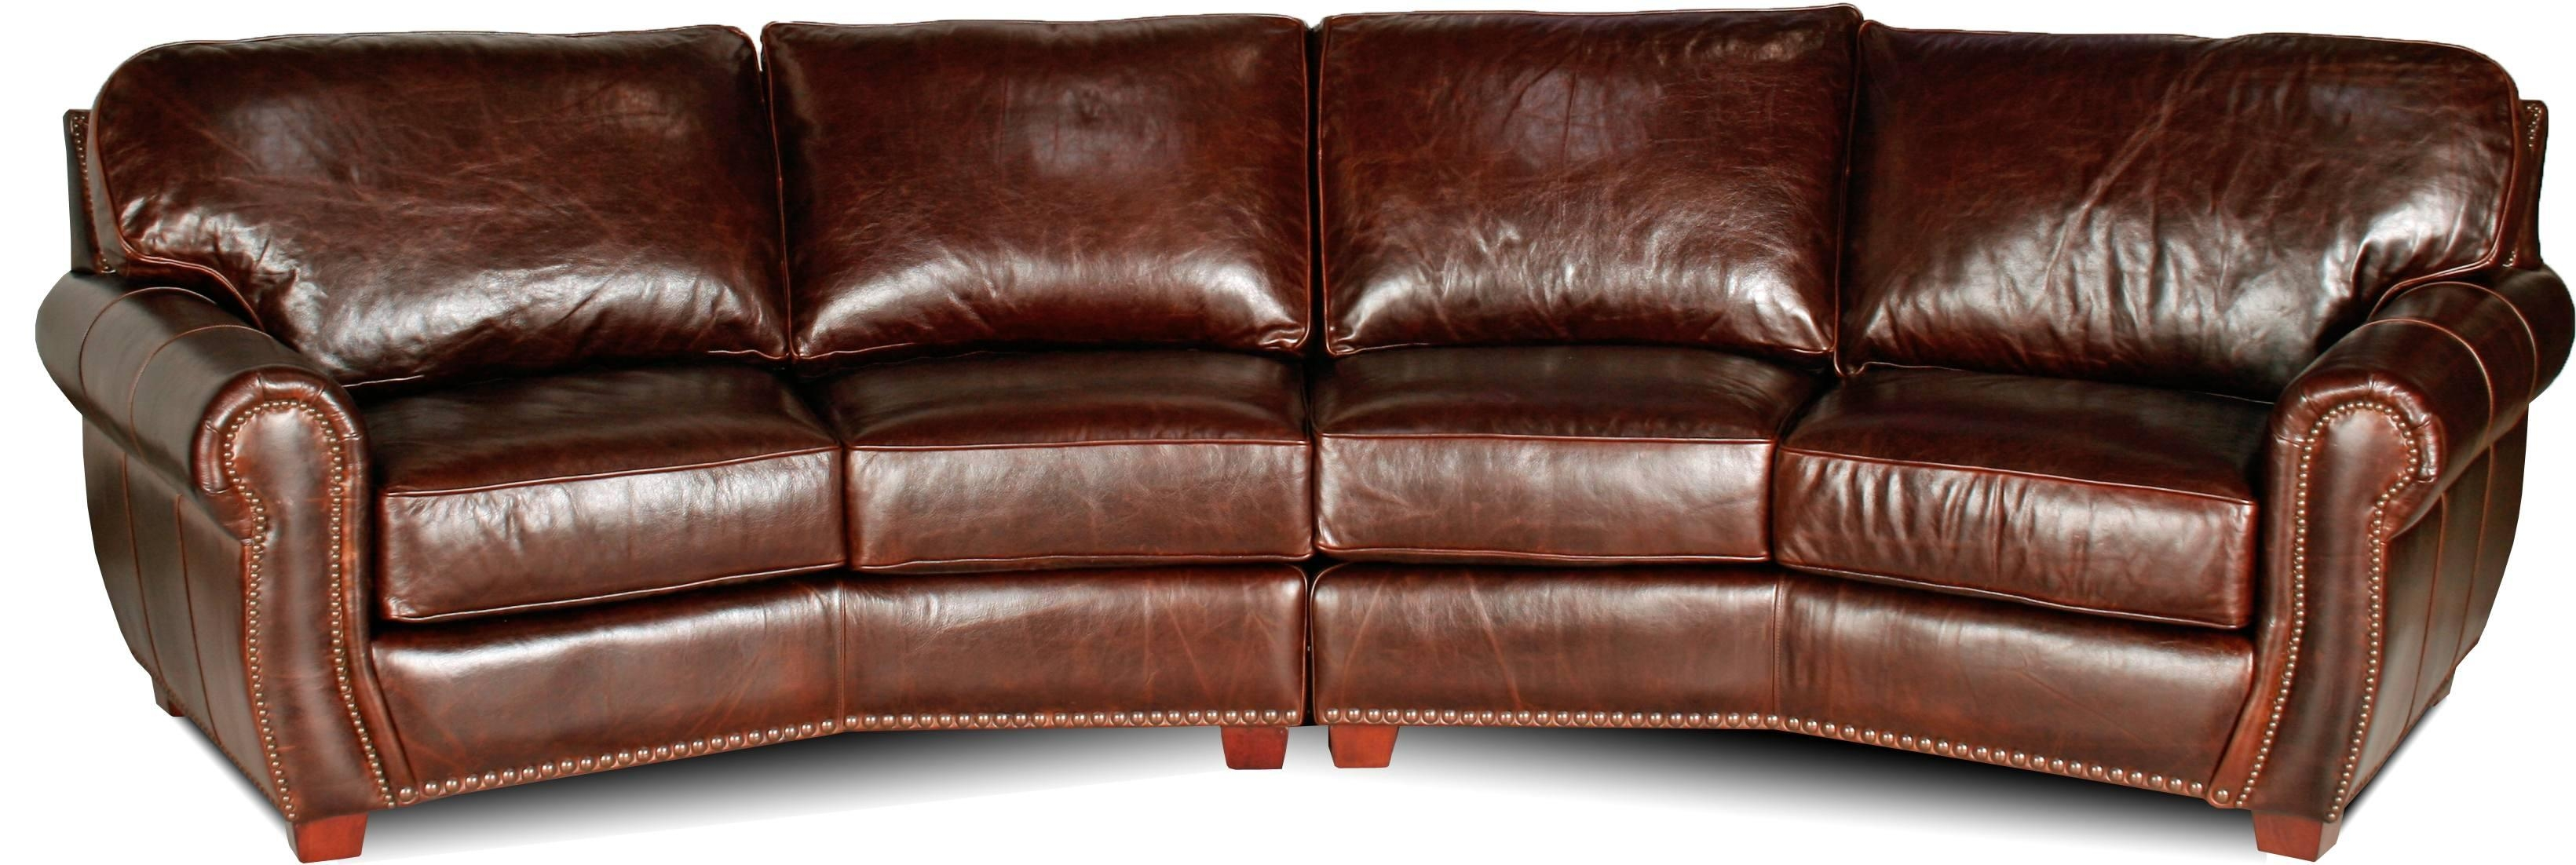 Where / What Is The Cheapest Way To Purchase A Leather Sofa? | The For 4 Seat Leather Sofas (Image 20 of 20)